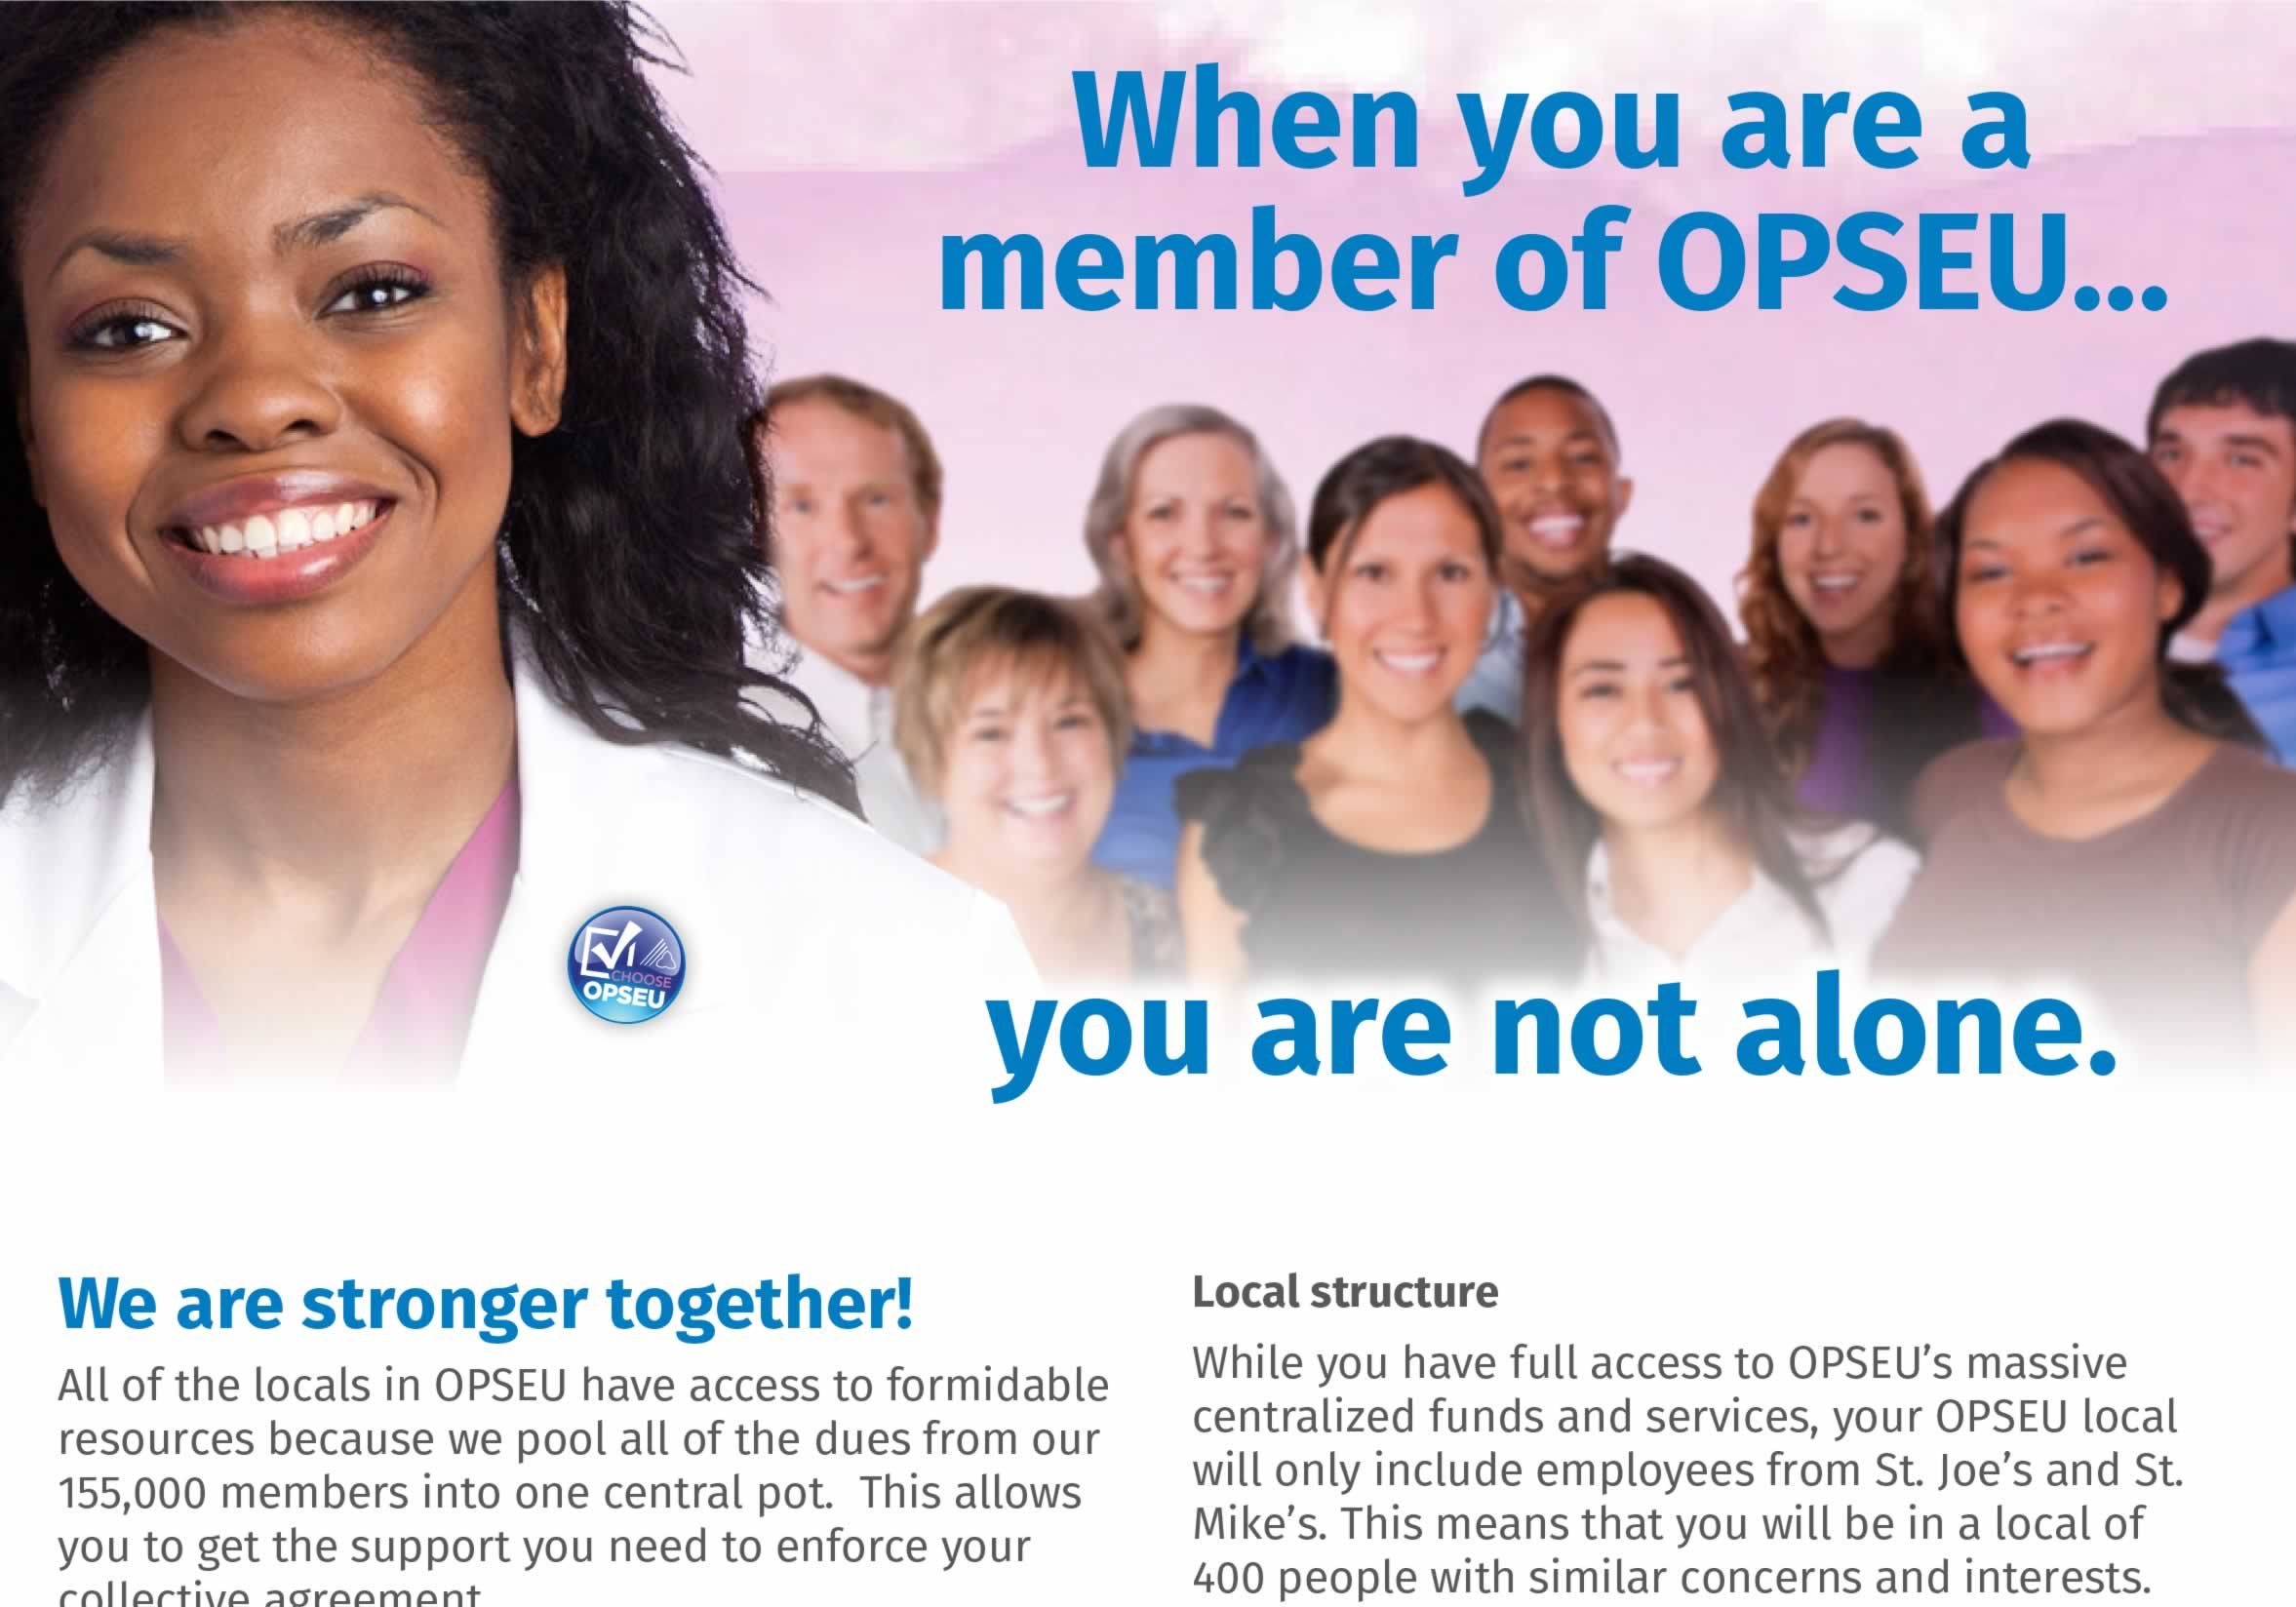 When you are a member of OPSEU, you are not alone.